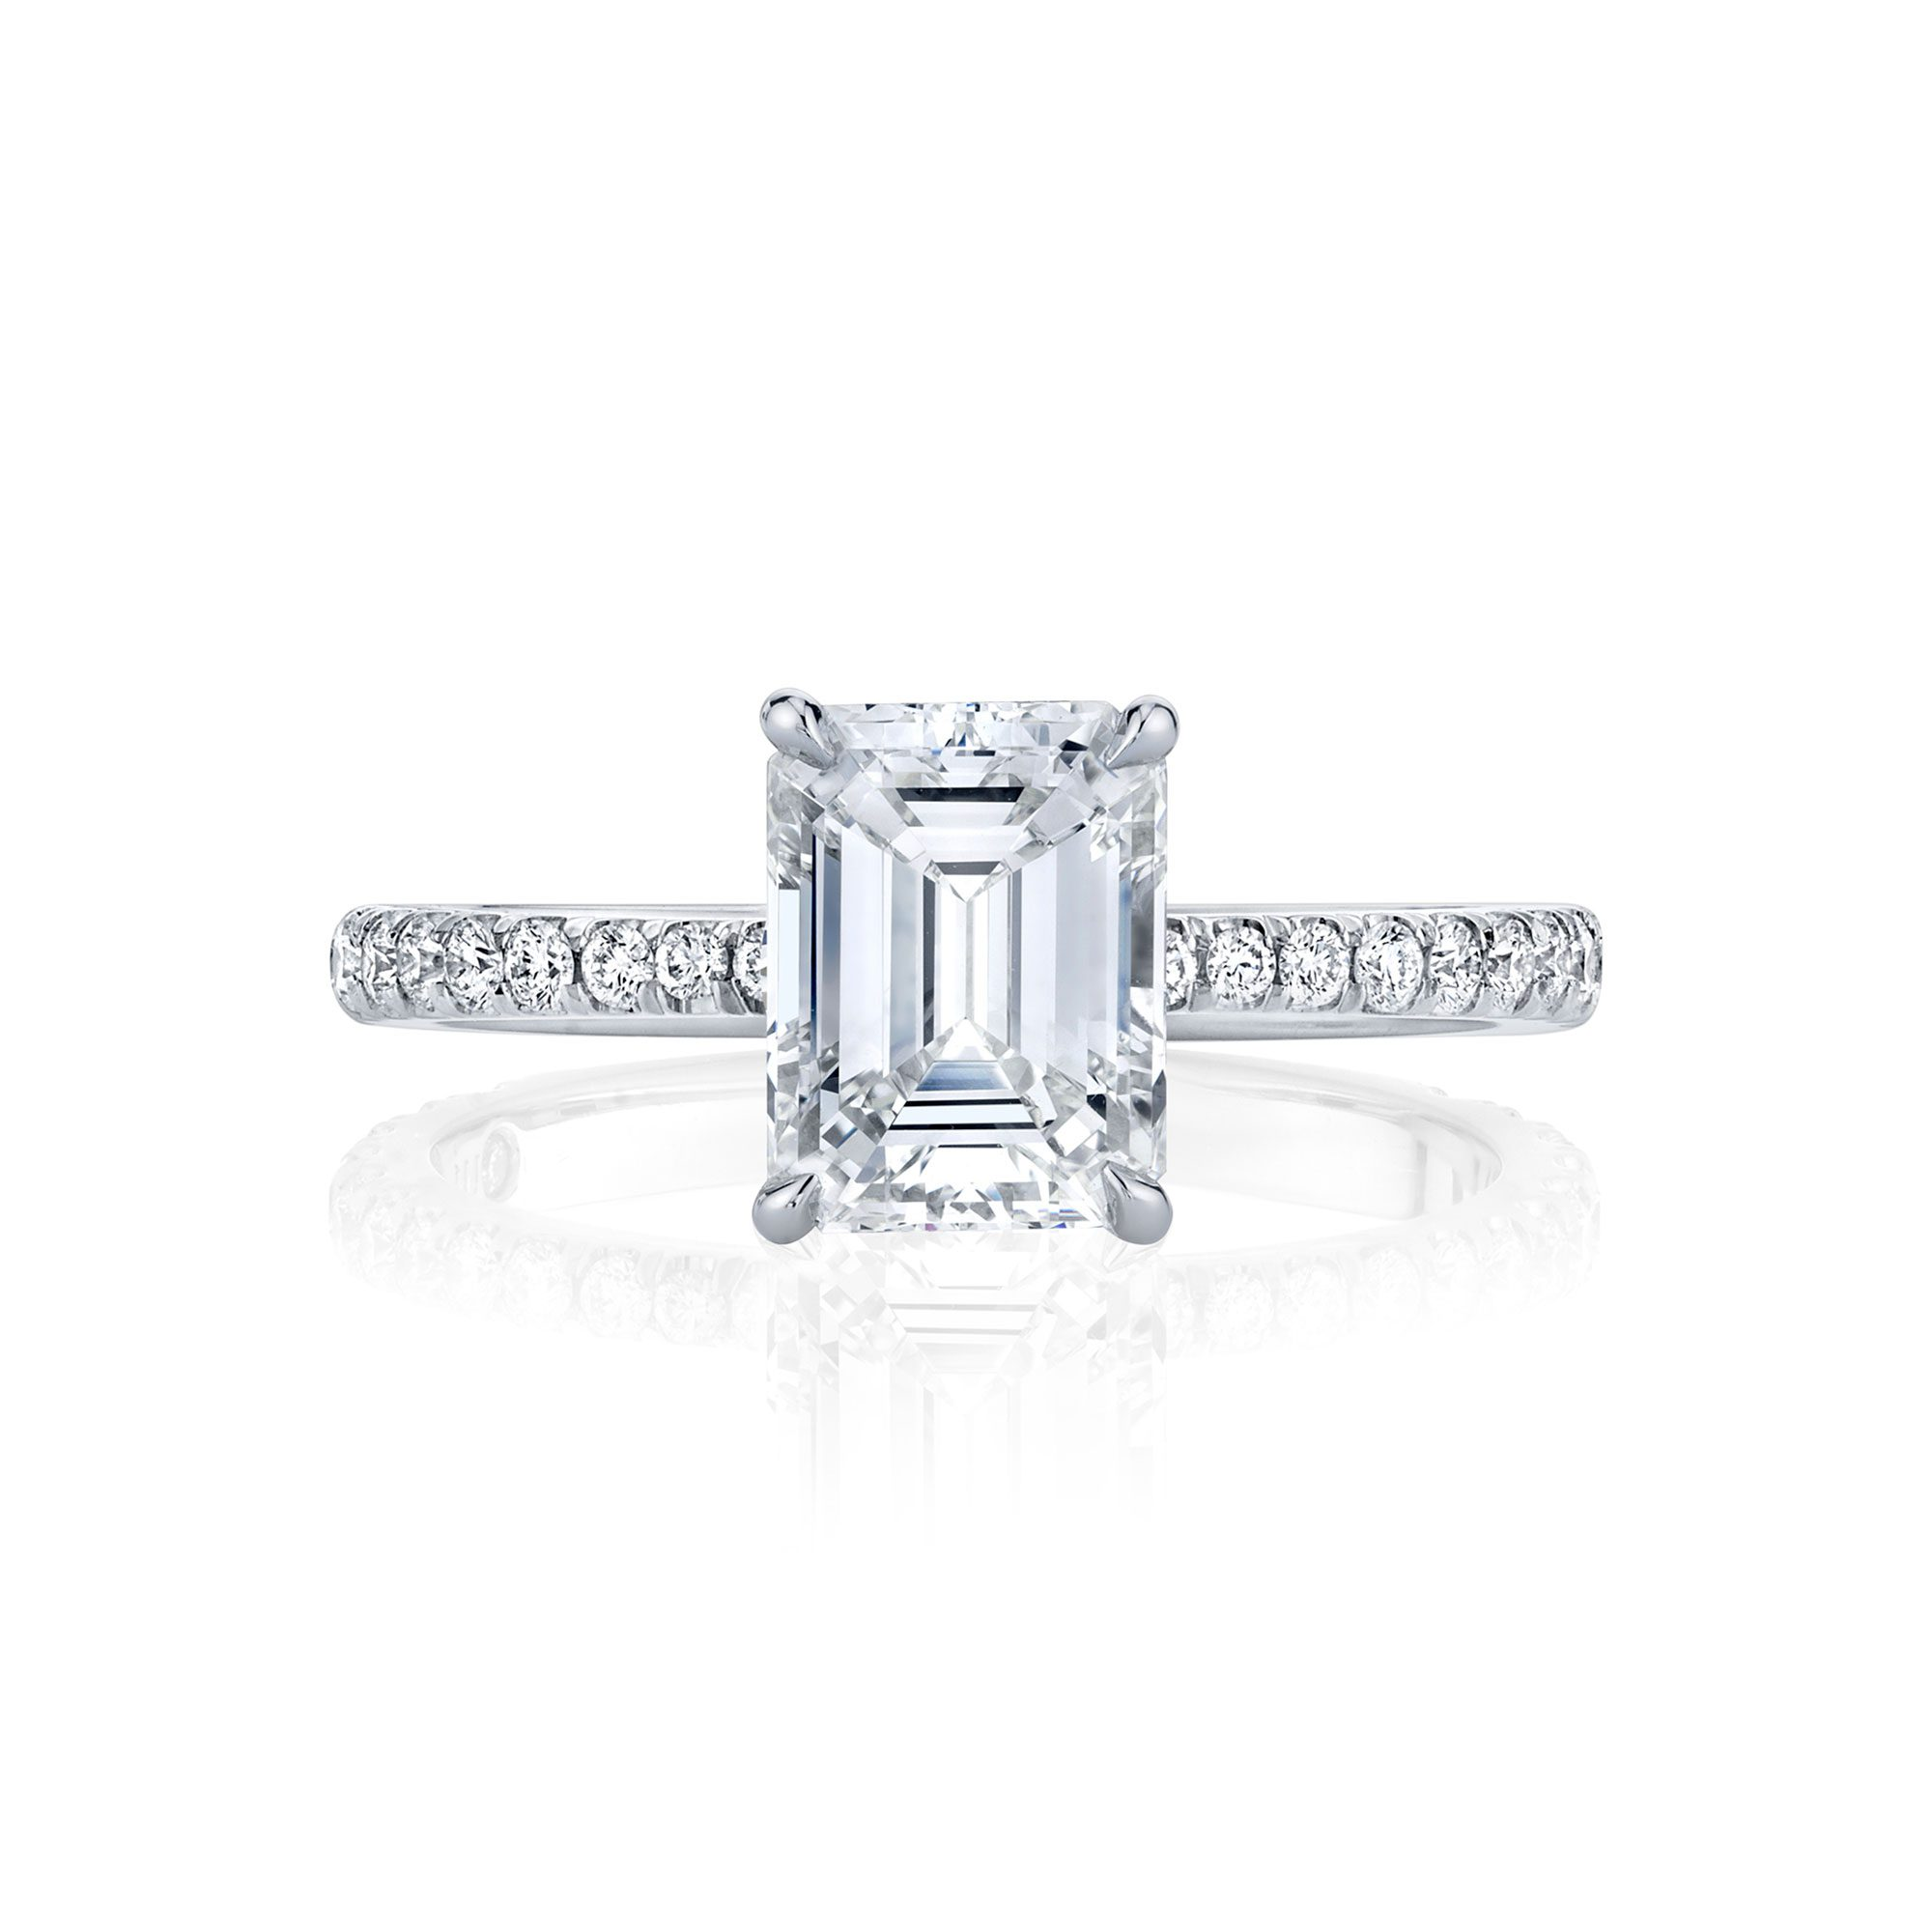 Eloise Emerald Solitaire Engagement Ring with a diamond pavé band in 18k White Gold Front View by Oui by Jean Dousset